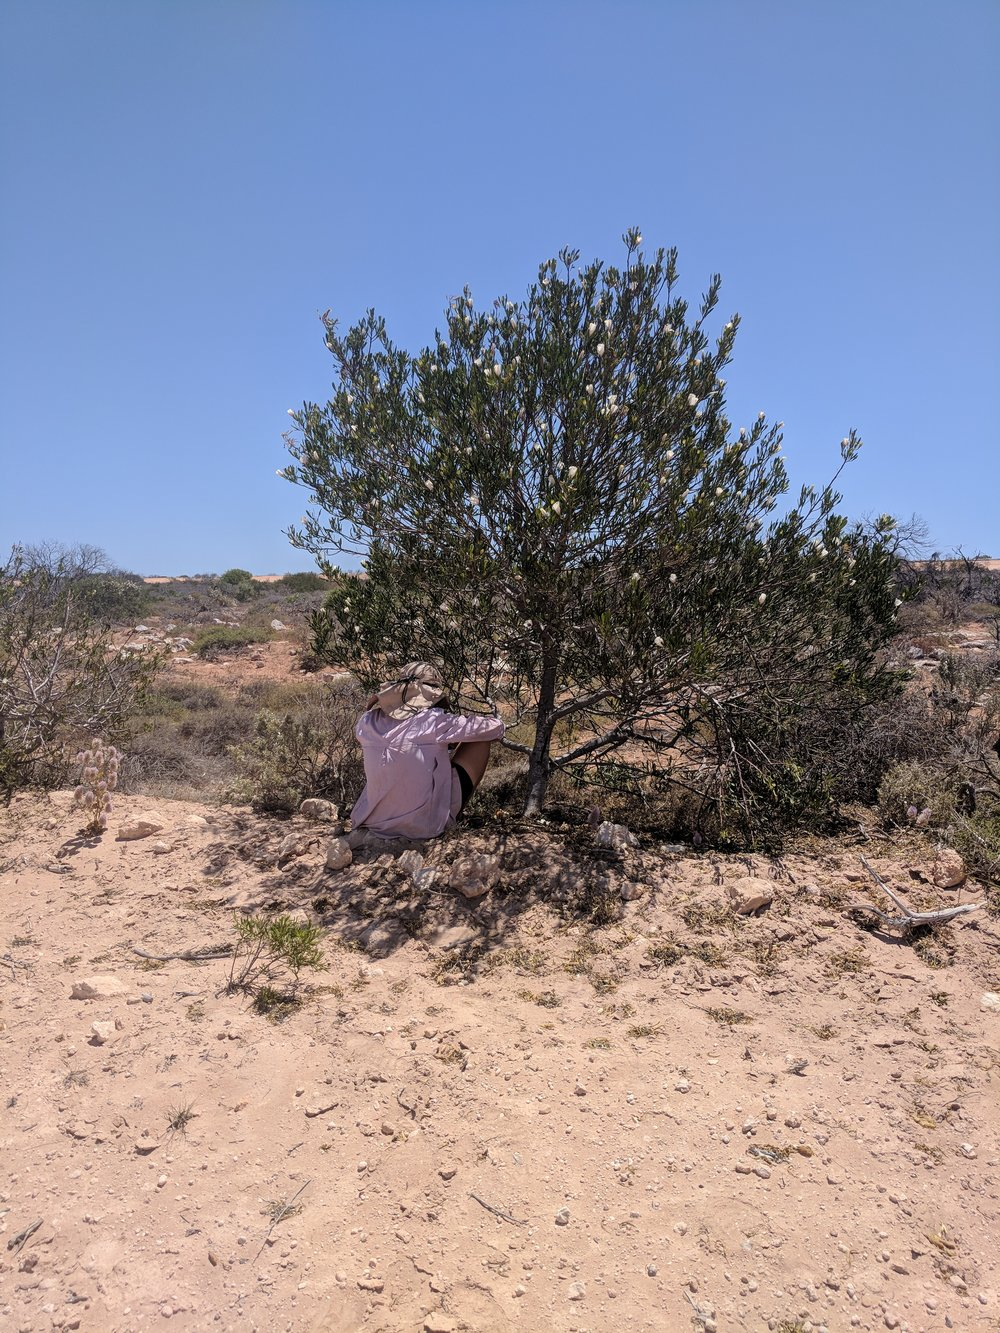 a particulary hot day with little shade means that whatever is around is used. Almost at Useless Loop